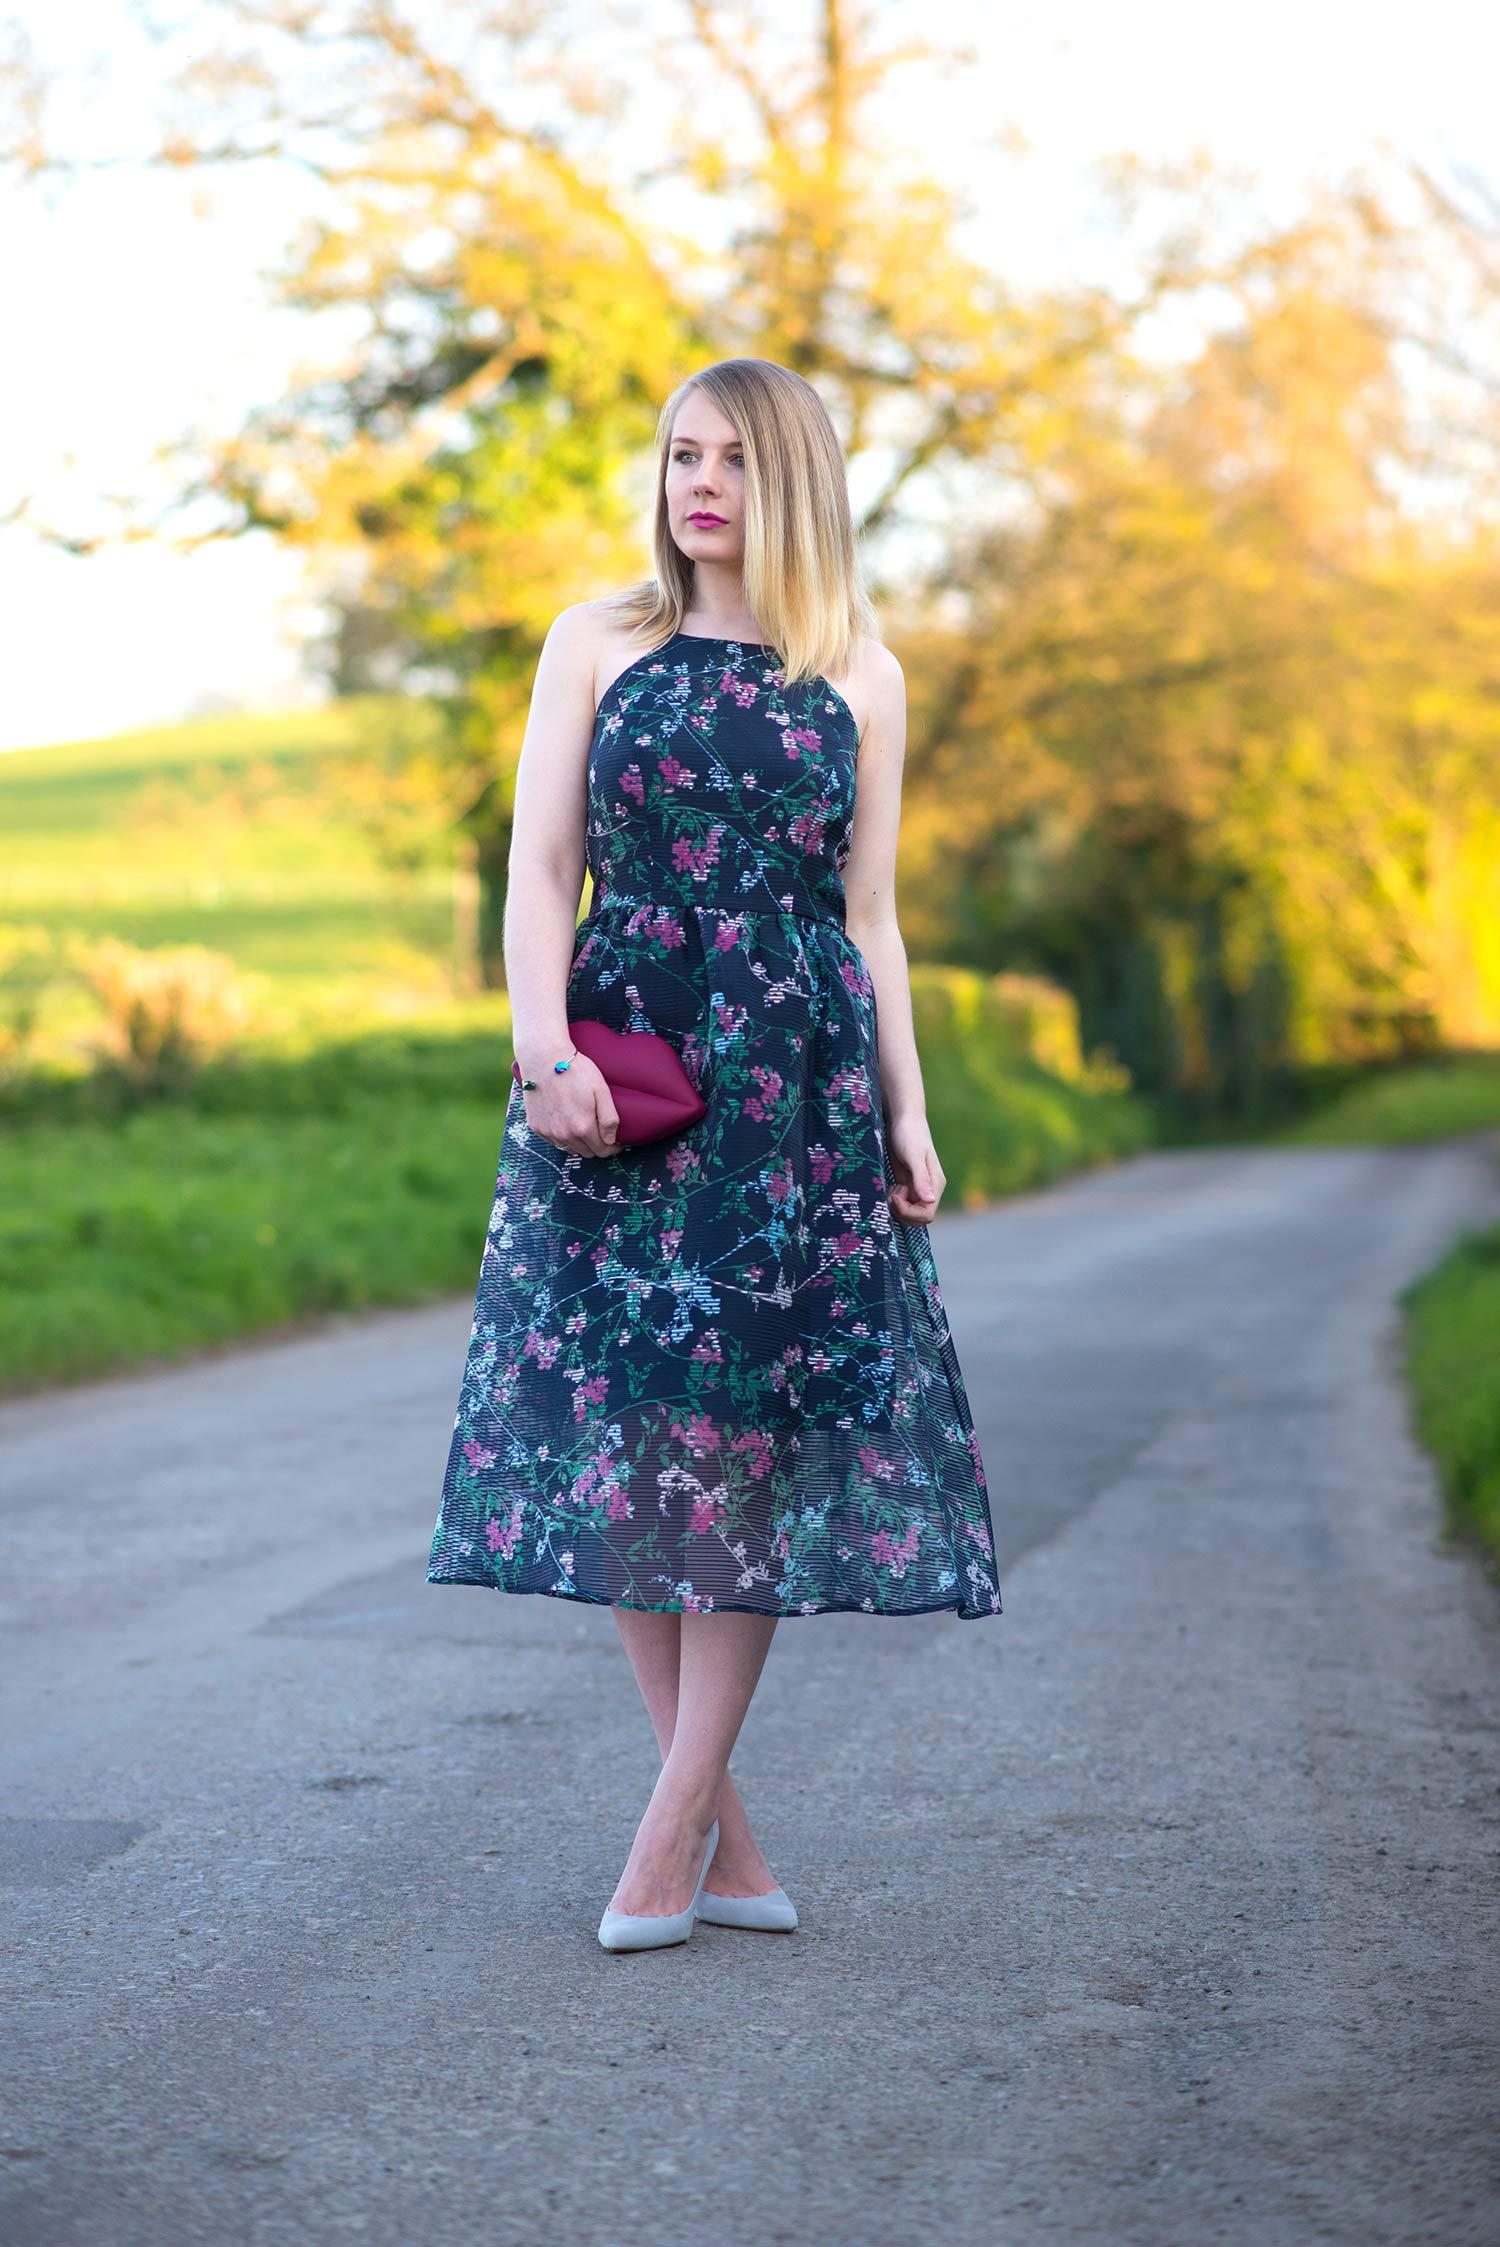 Feel Confident At A Wedding With Marks & Spencer | Raindrops of Sapphire